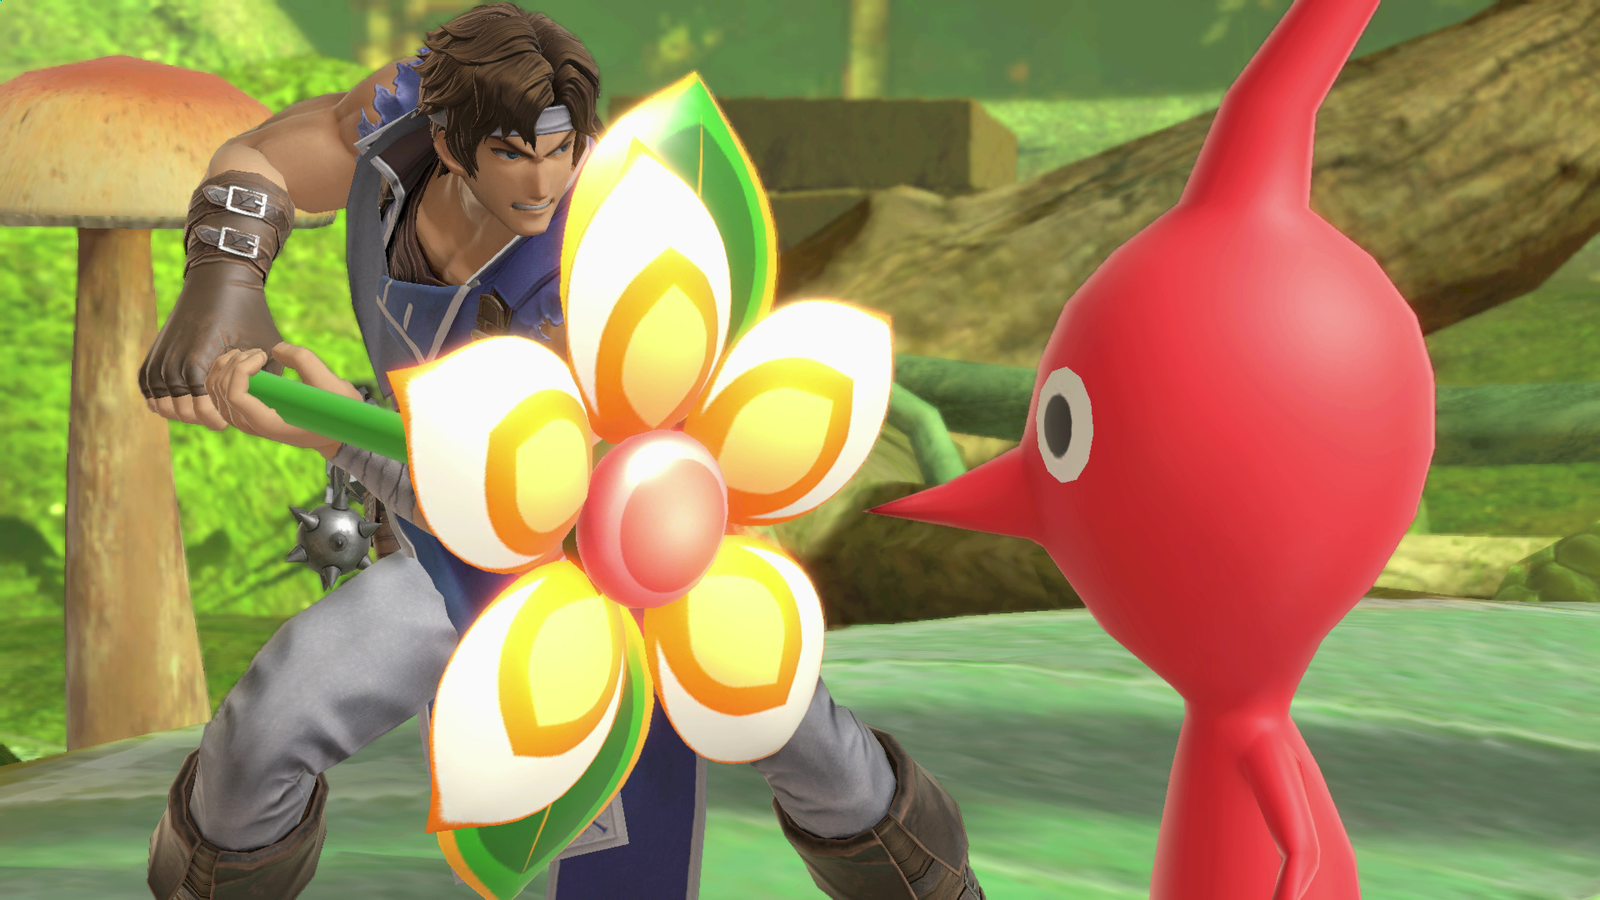 Tips For Playing Super Smash Bros. Ultimate